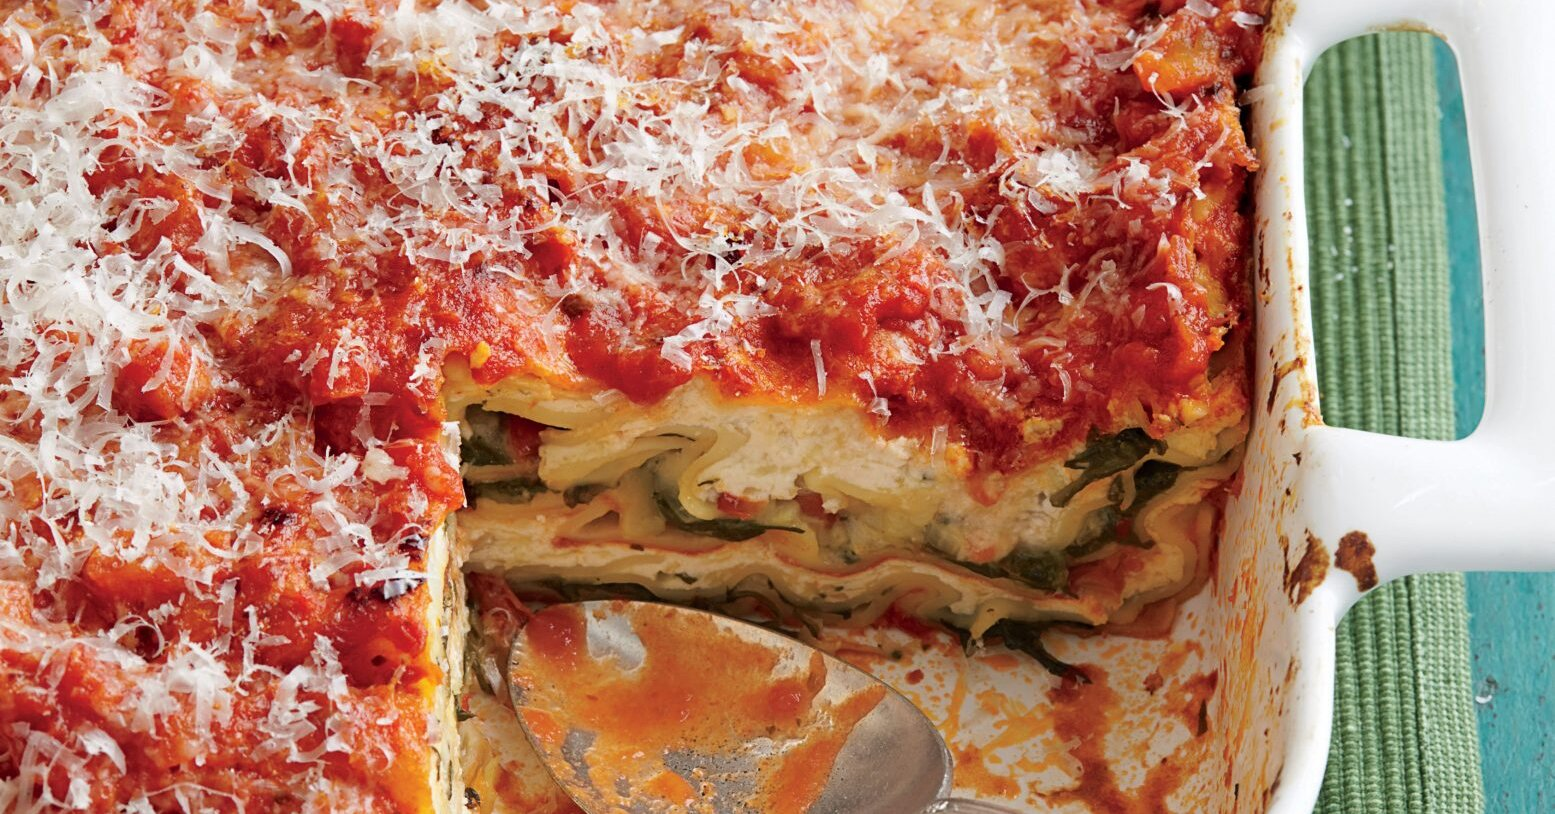 The Best Classic Lasagna Starts With a Layer of Sauce